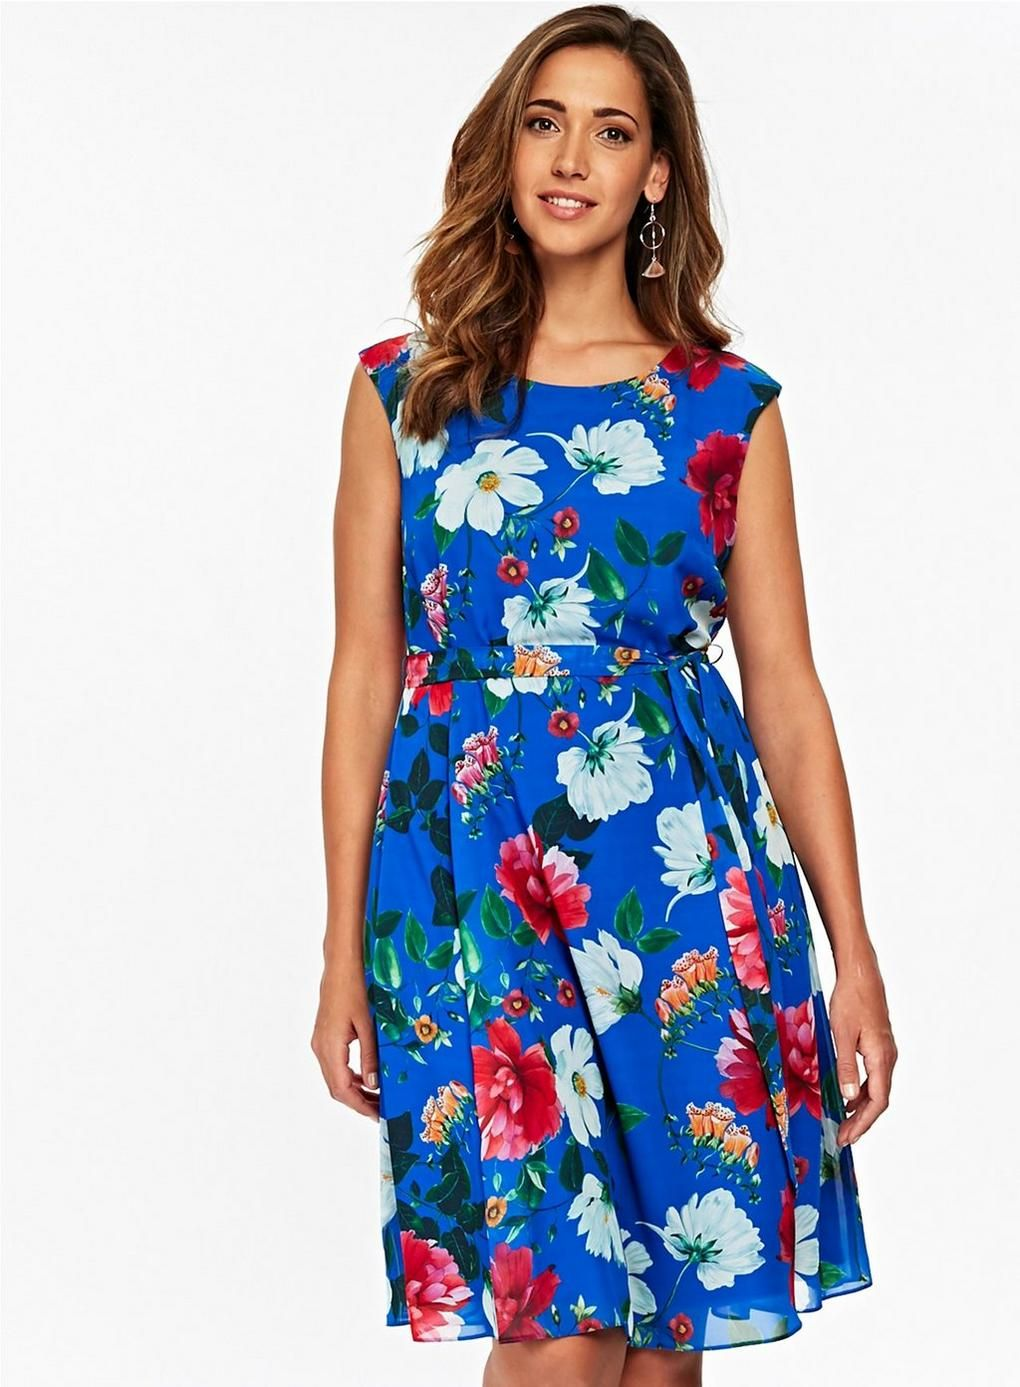 Perfect the trend blue dress forecasting dress for summer in 2019